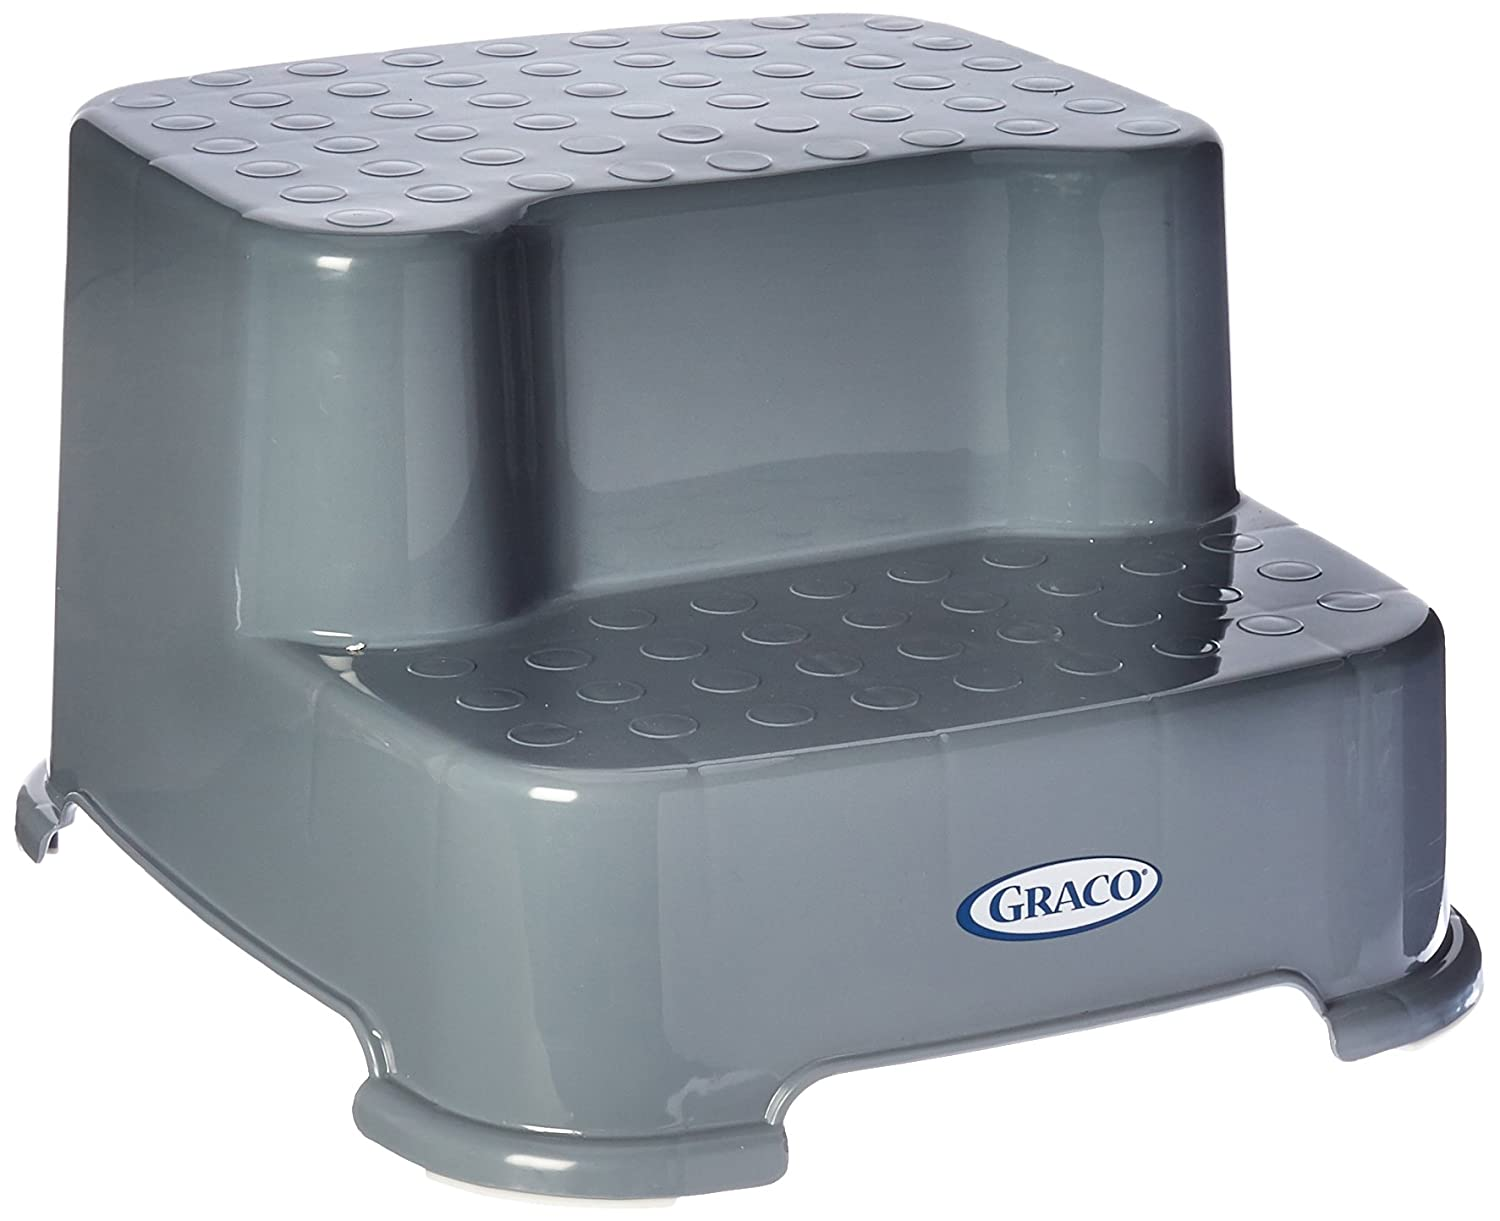 Graco 2 Step Transitions Step Stool, Gray 16026